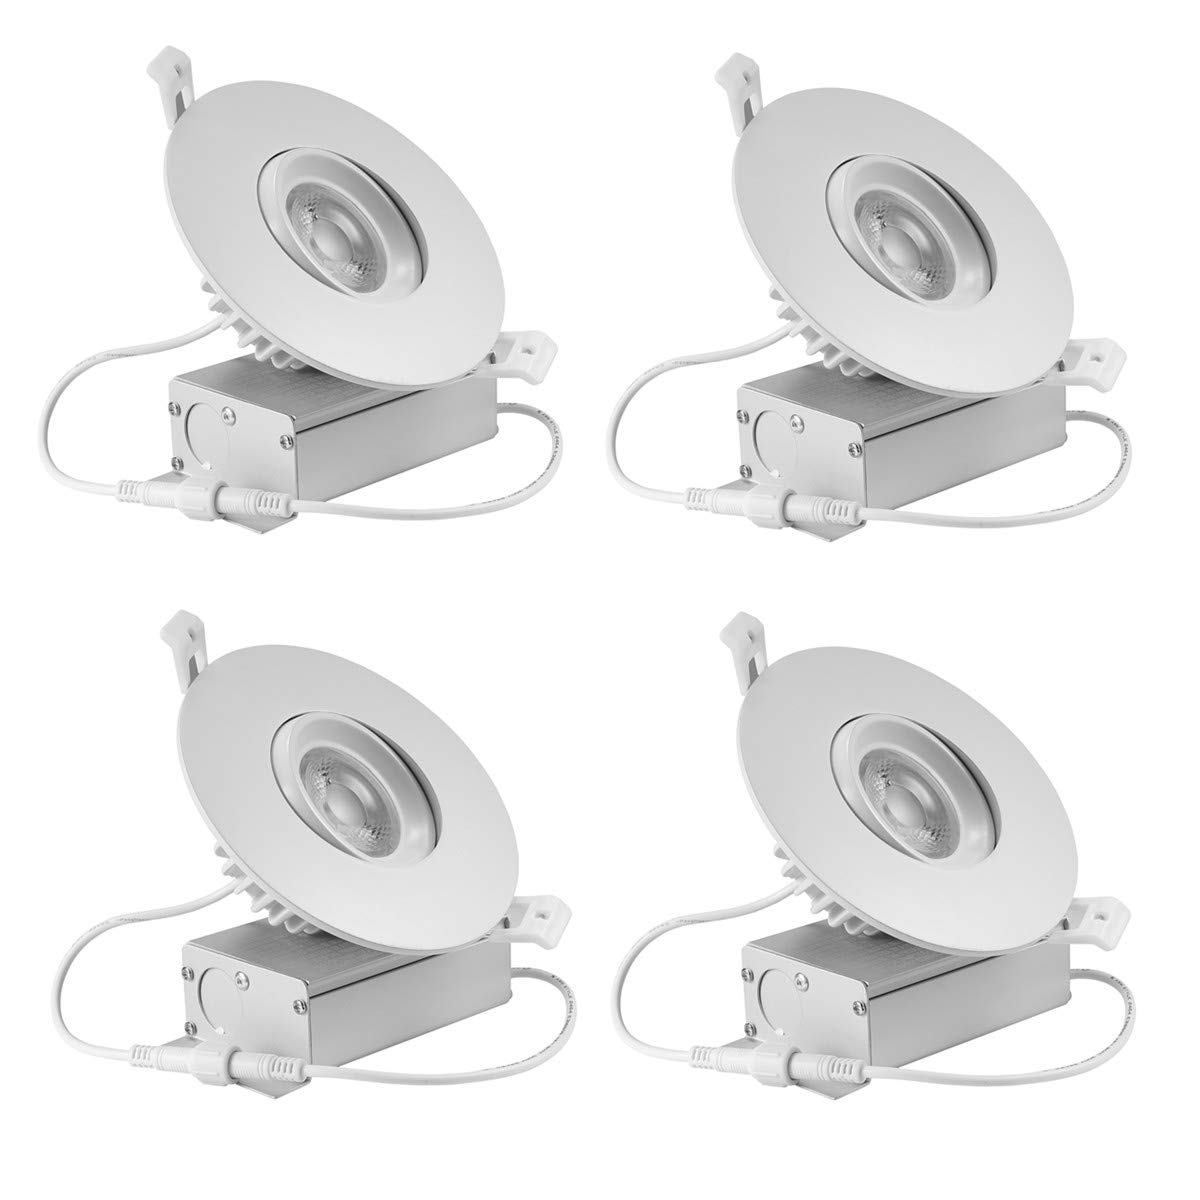 (4 Pack) NickLED 4 inches led gimbal Downlights-Directional Adjustable, 12W Dimmable LED Retrofit Recessed Lighting Fixture with IC Rated Junction box,1100lm(100W Replacement) 5000K-Nature White,120V